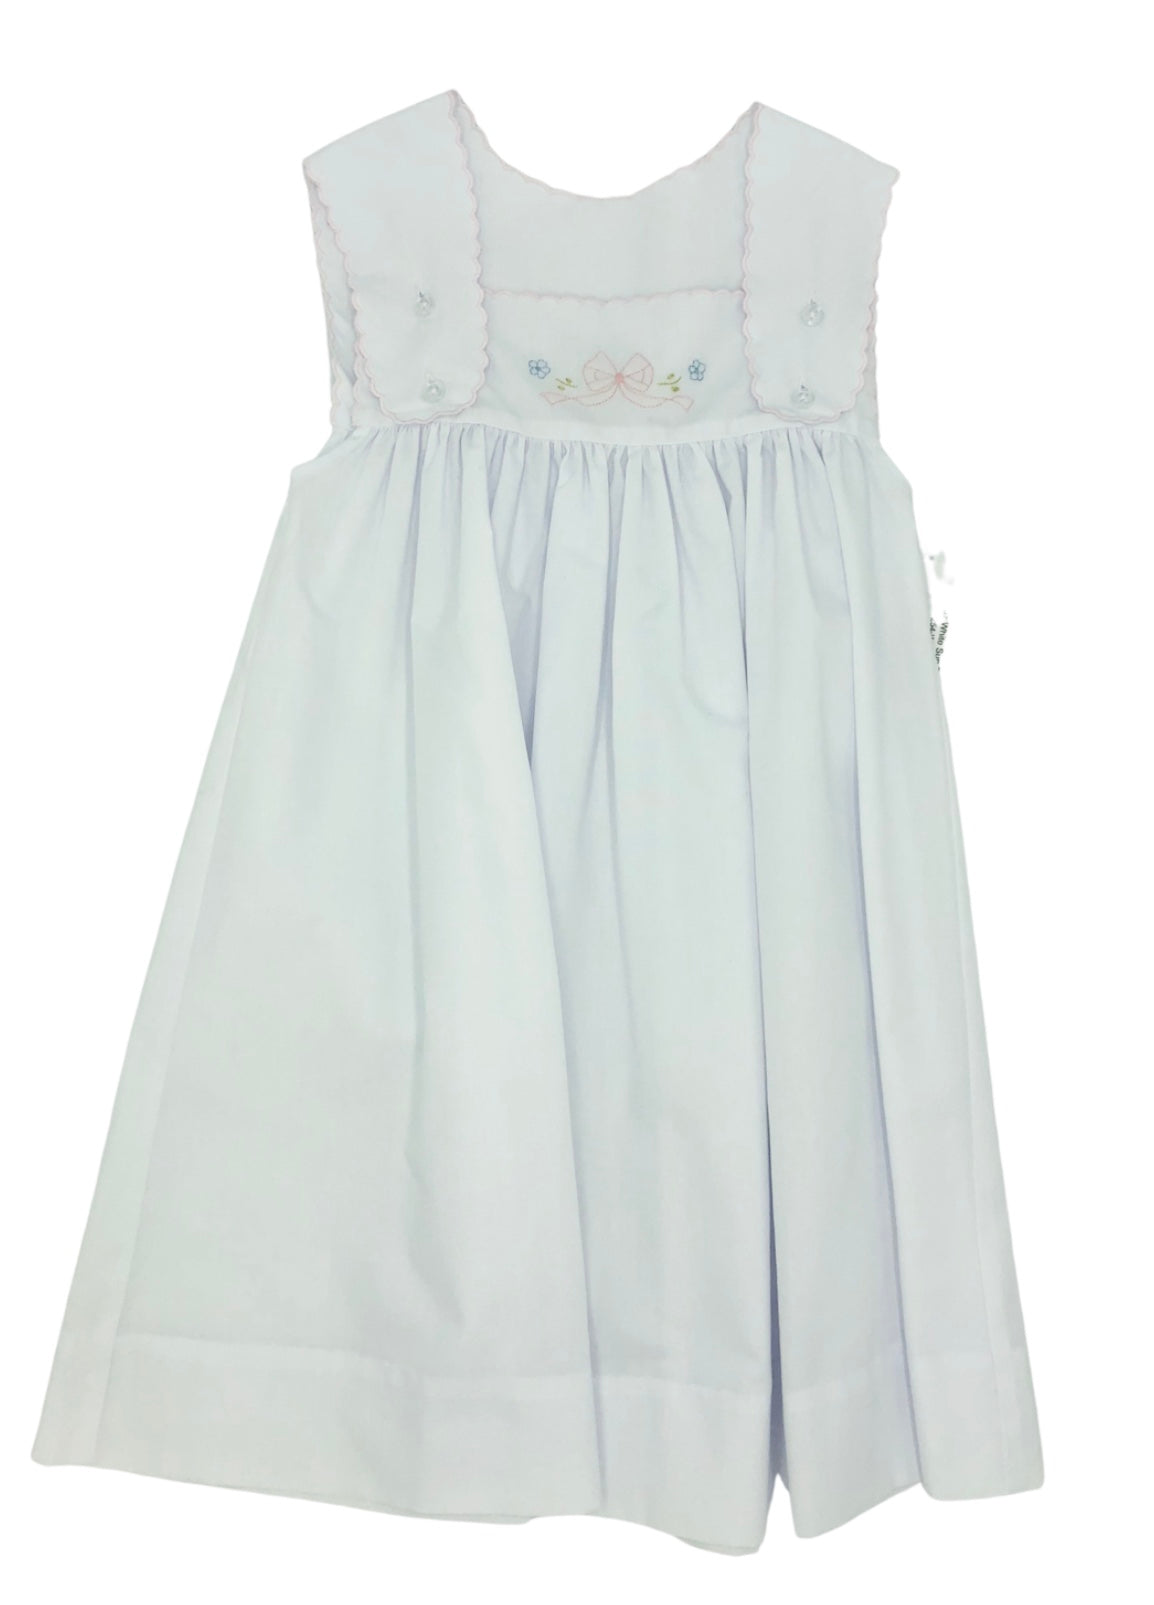 Auraluz White Sun Dress with Tiny Bows